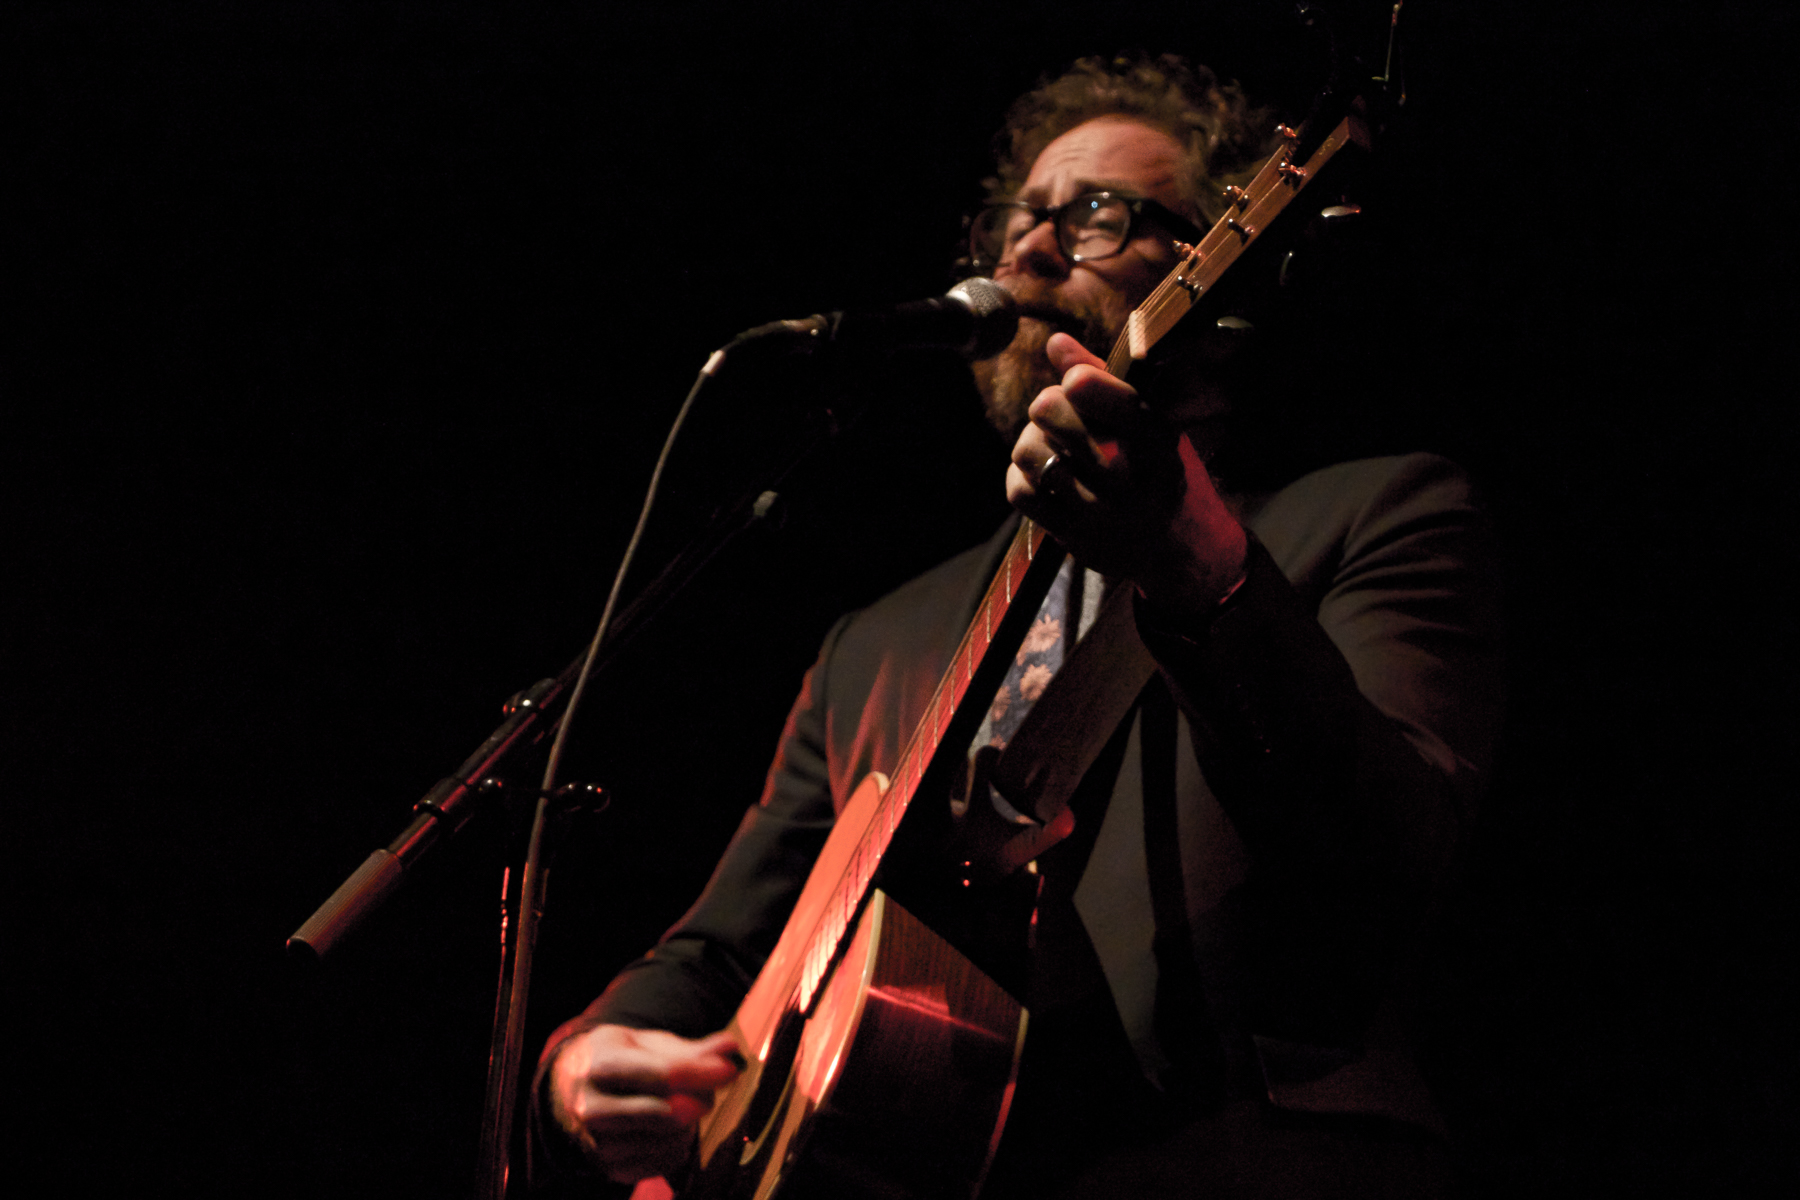 jonathan coulton 8 lior phillips Live Review: Aimee Mann at Chicago's Park West (4/29)